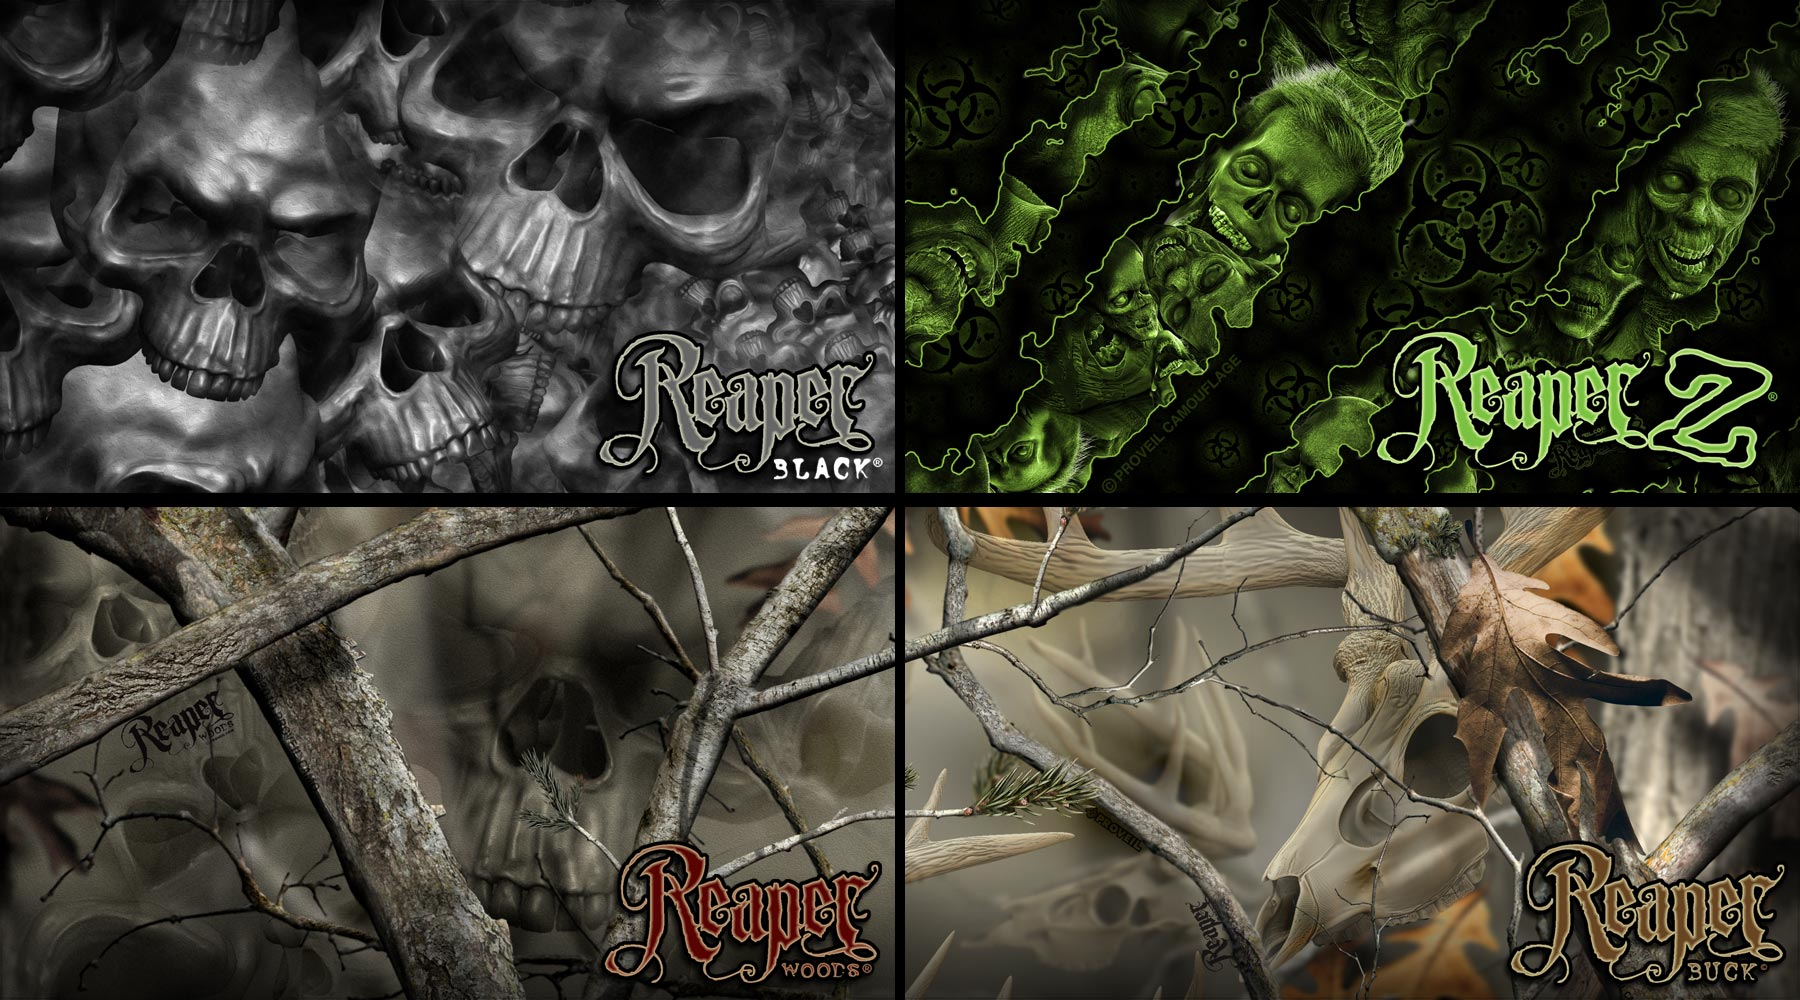 The Reaper Series from Proveil Camo